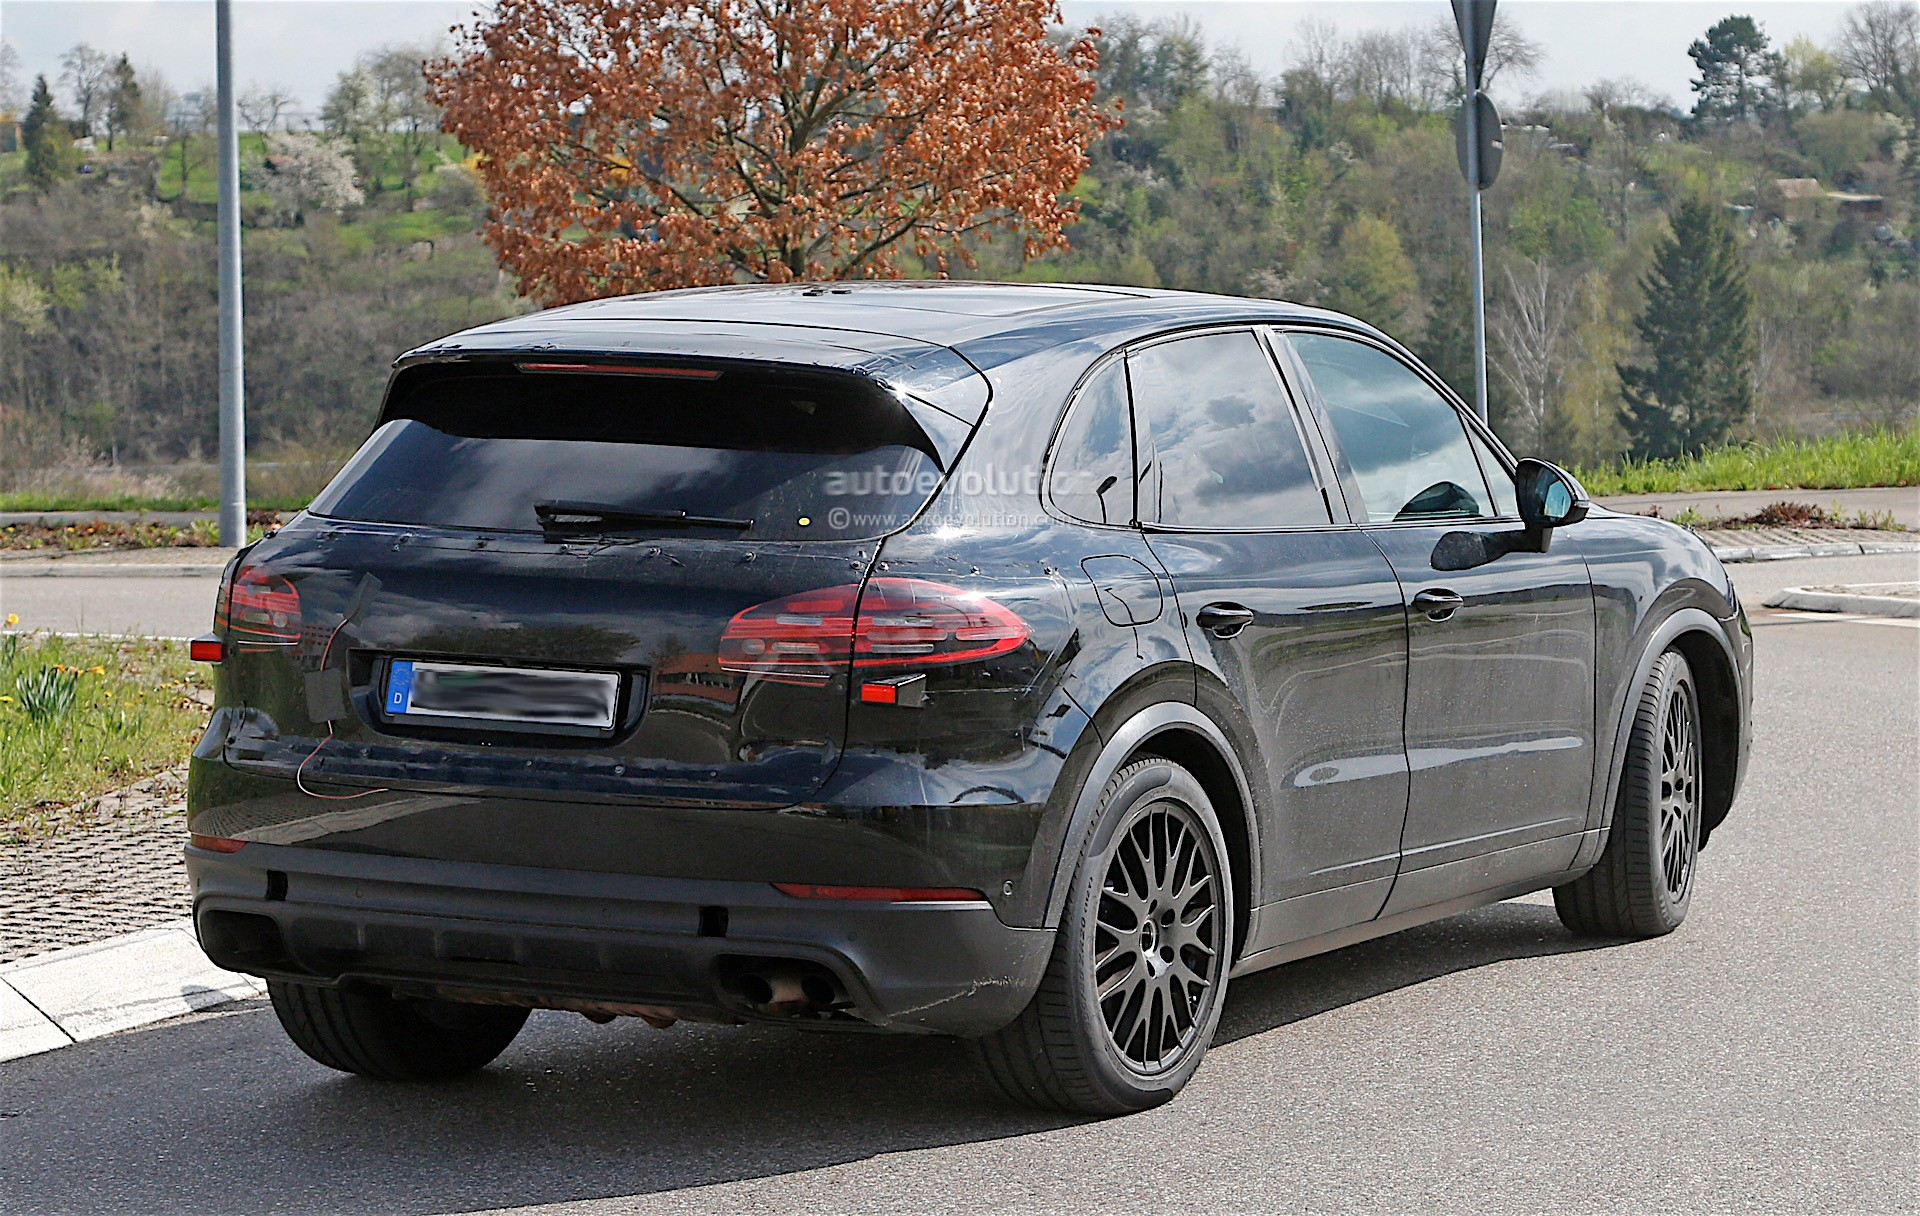 2018 Porsche Cayenne Interior Revealed, Gets Larger